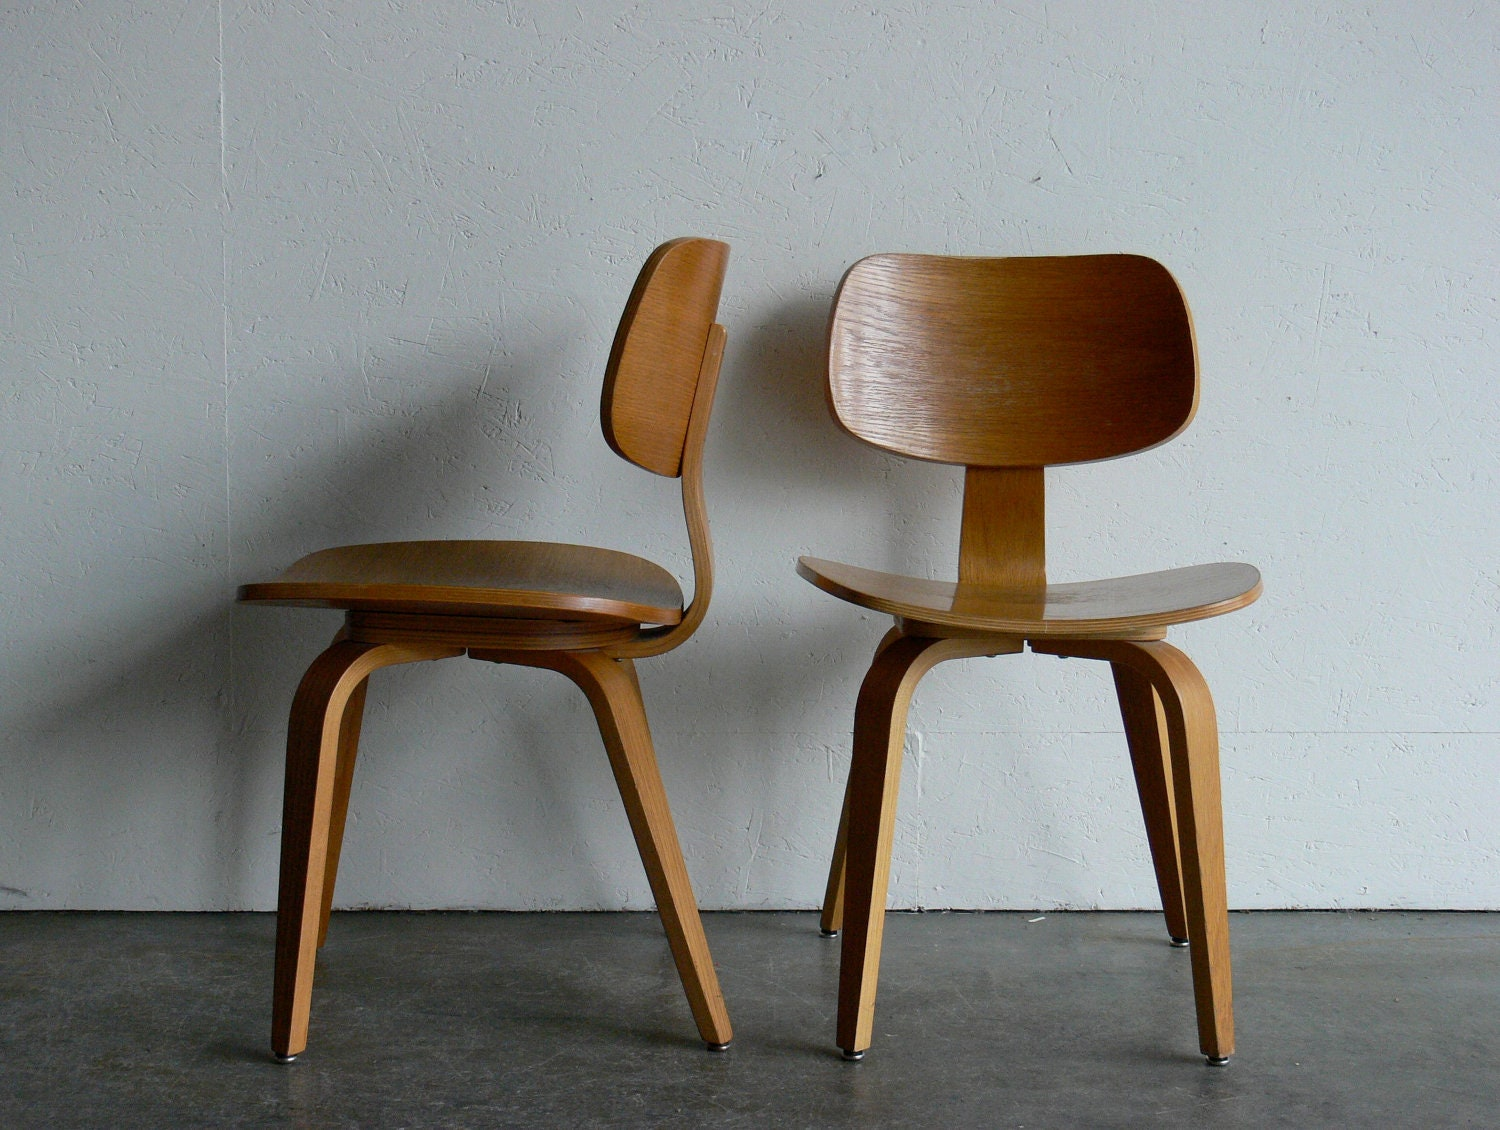 on hold vintage mid century modern thonet plywood chair set. Black Bedroom Furniture Sets. Home Design Ideas